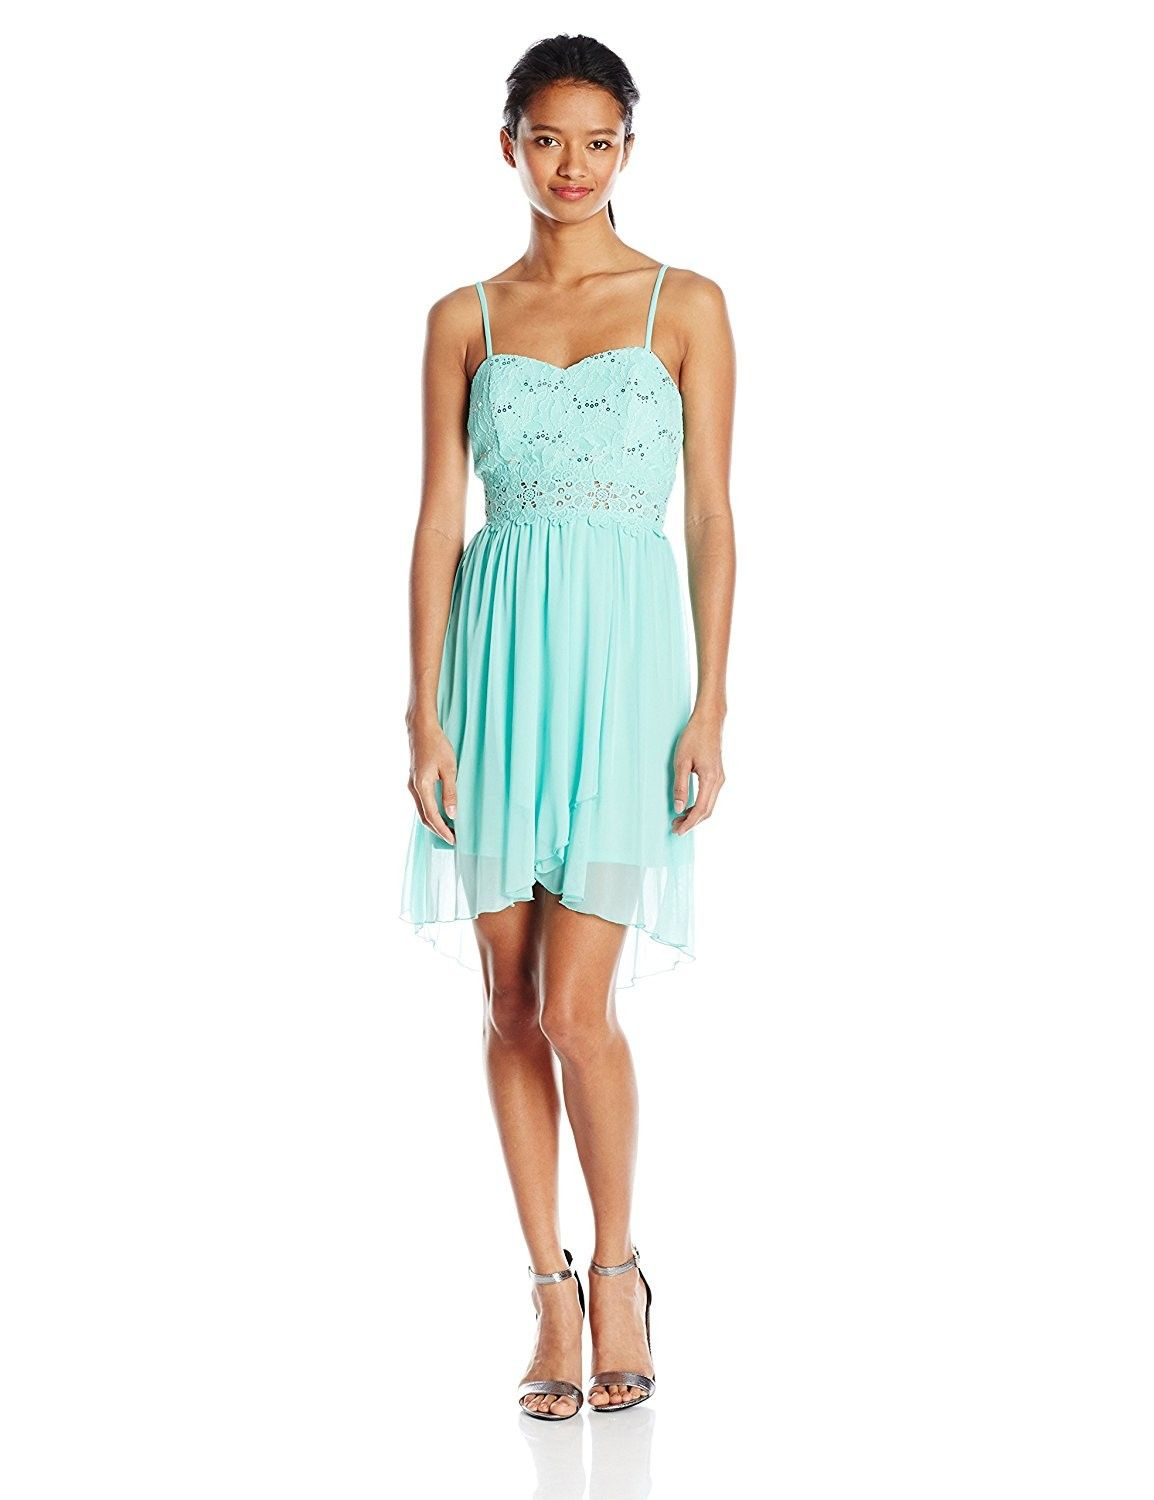 5ef8a156989 A. Byer Junior s Strappy Sweetheart Hi Lo Prom Dress - Blue ...